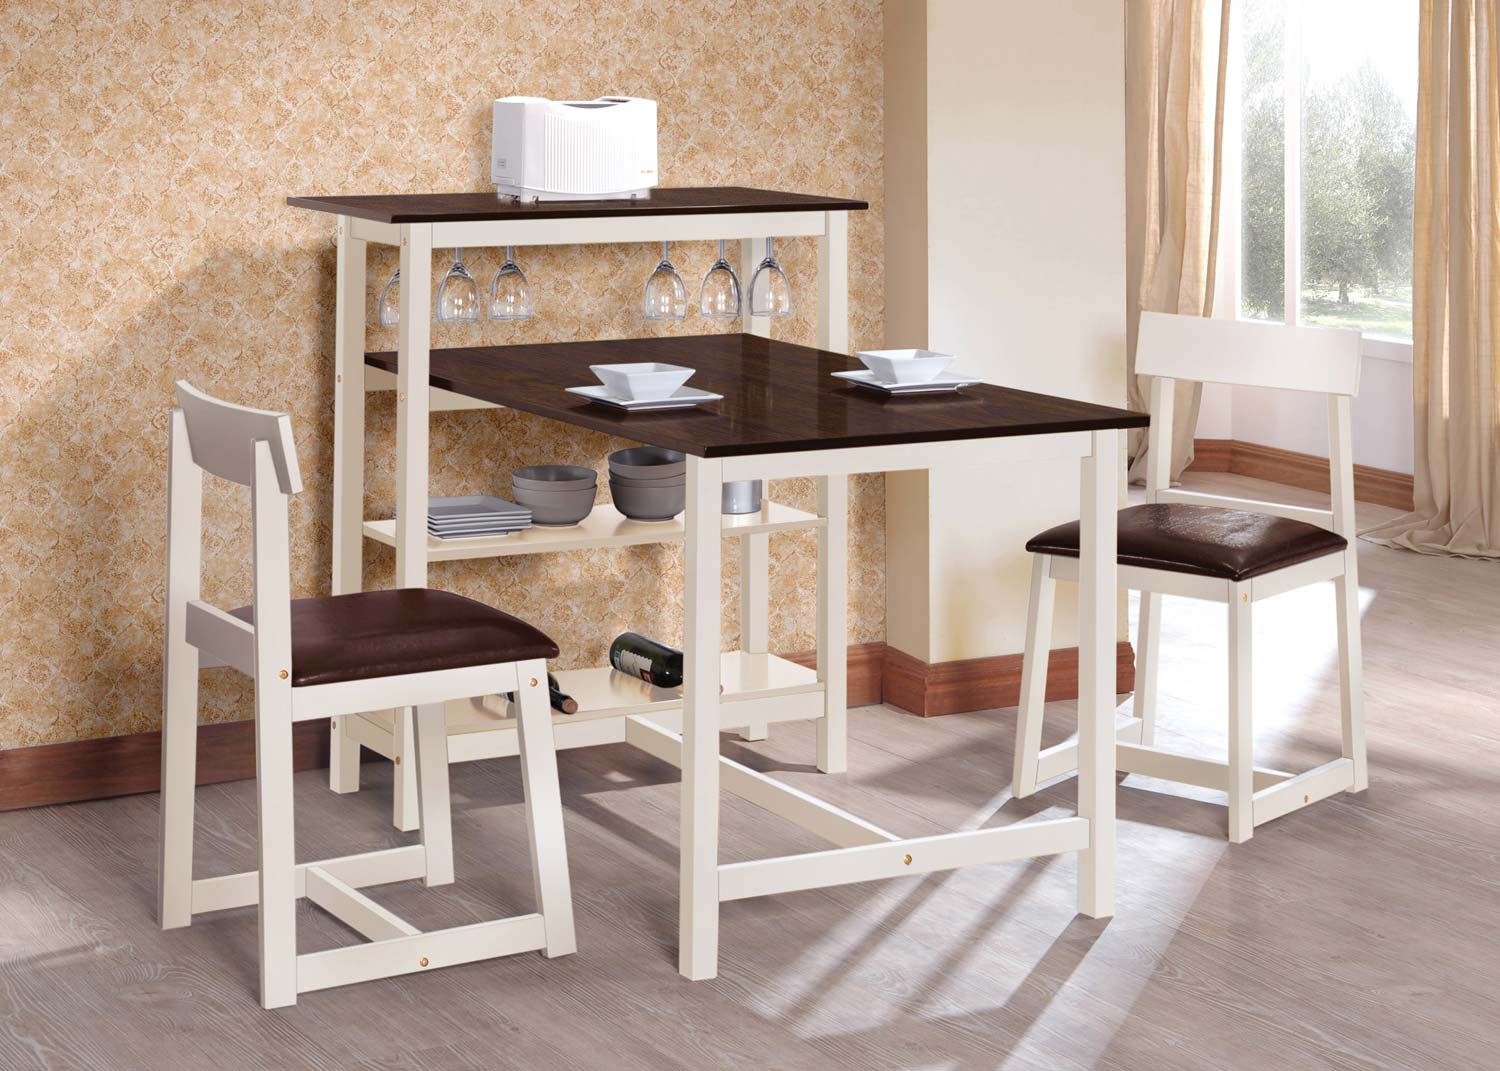 Coaster 130007 3 Pc Breakfast Table Set - Dark Espresso/White